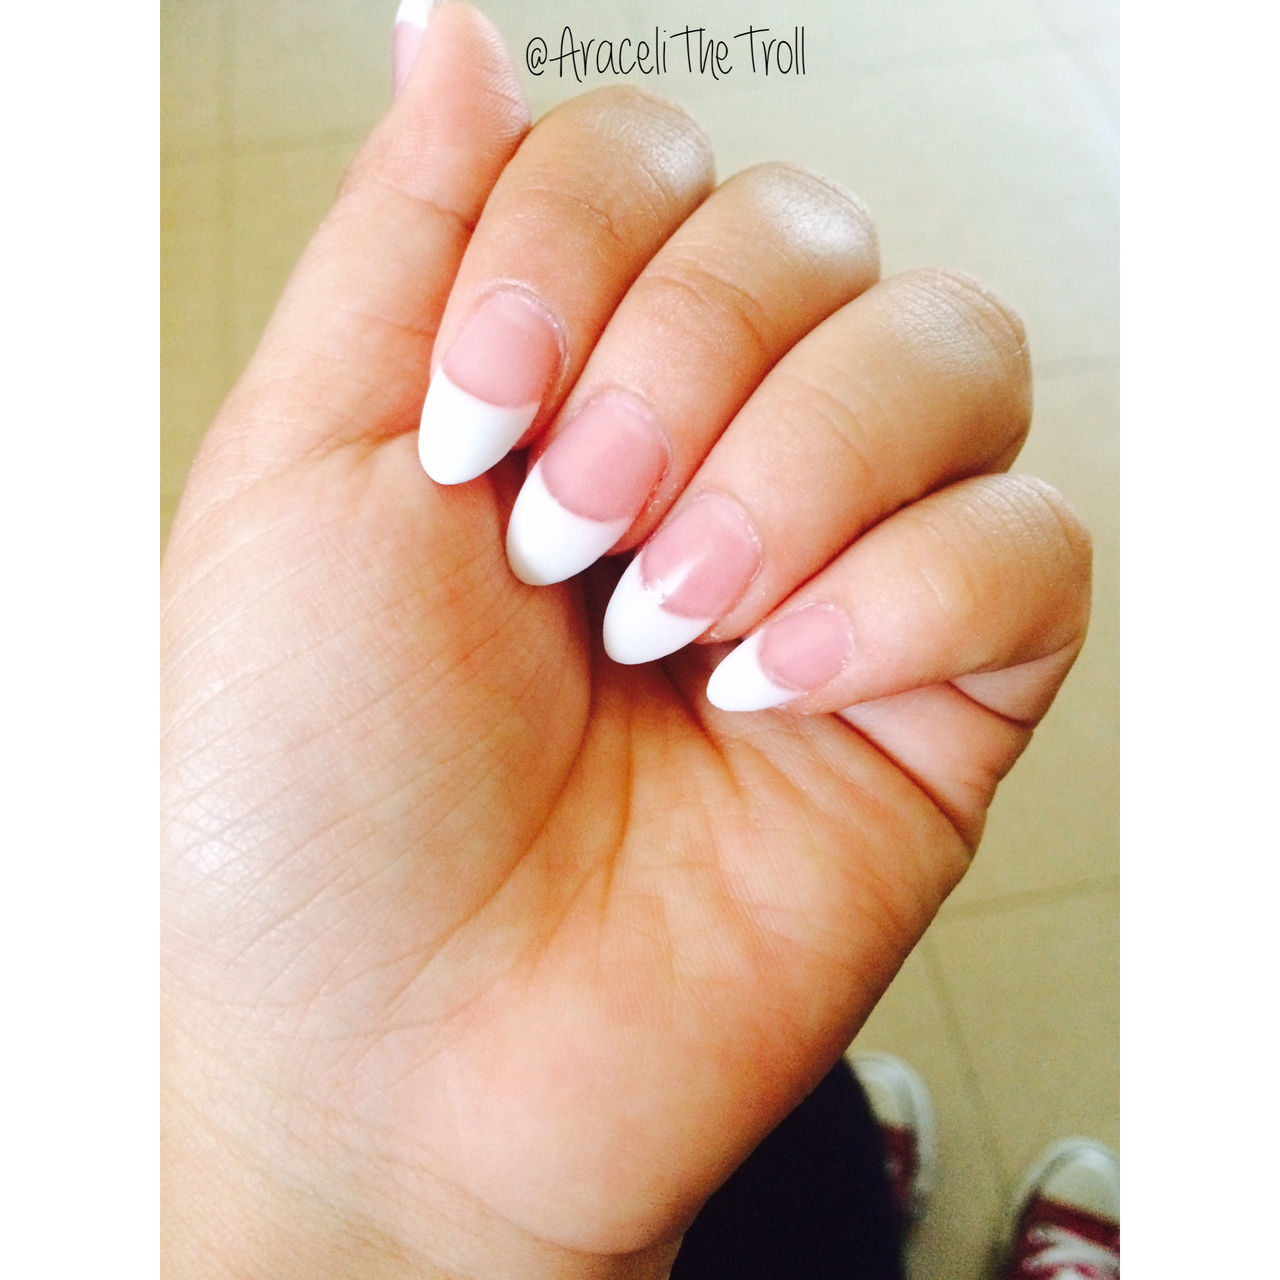 French almond nails 😍 shared by Araceli Mendoza